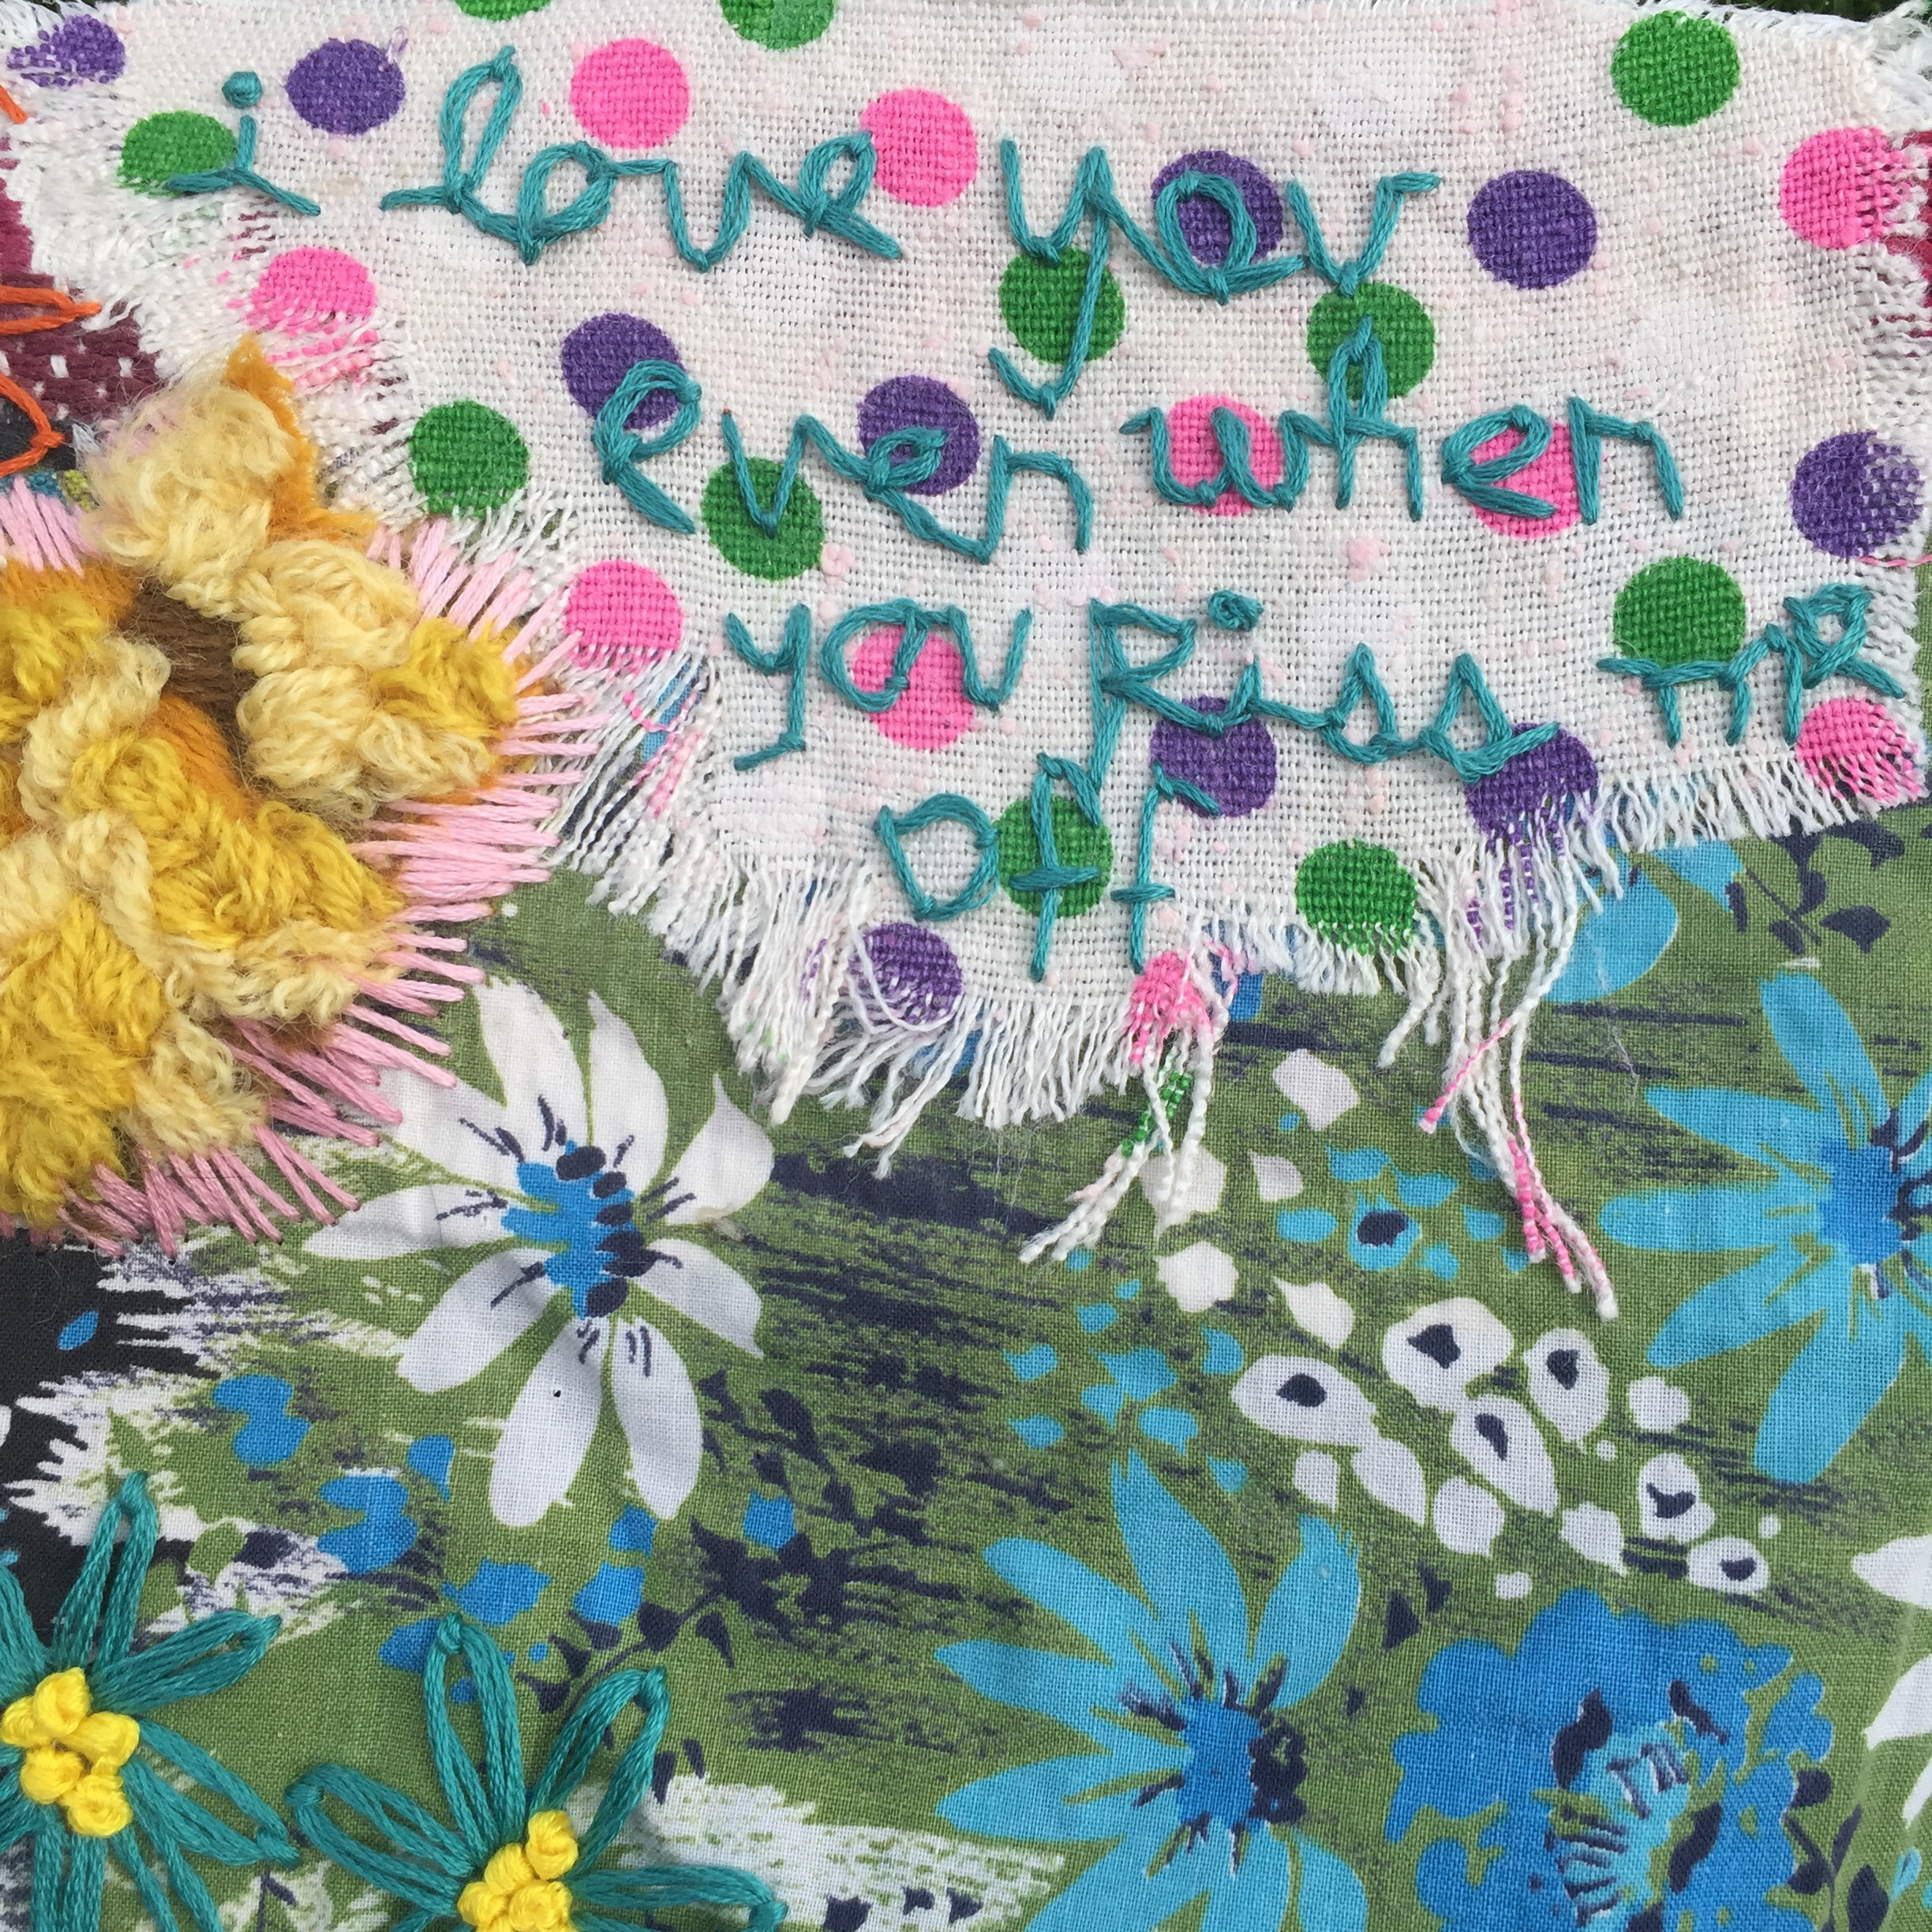 i love you even when you piss me off (detail)